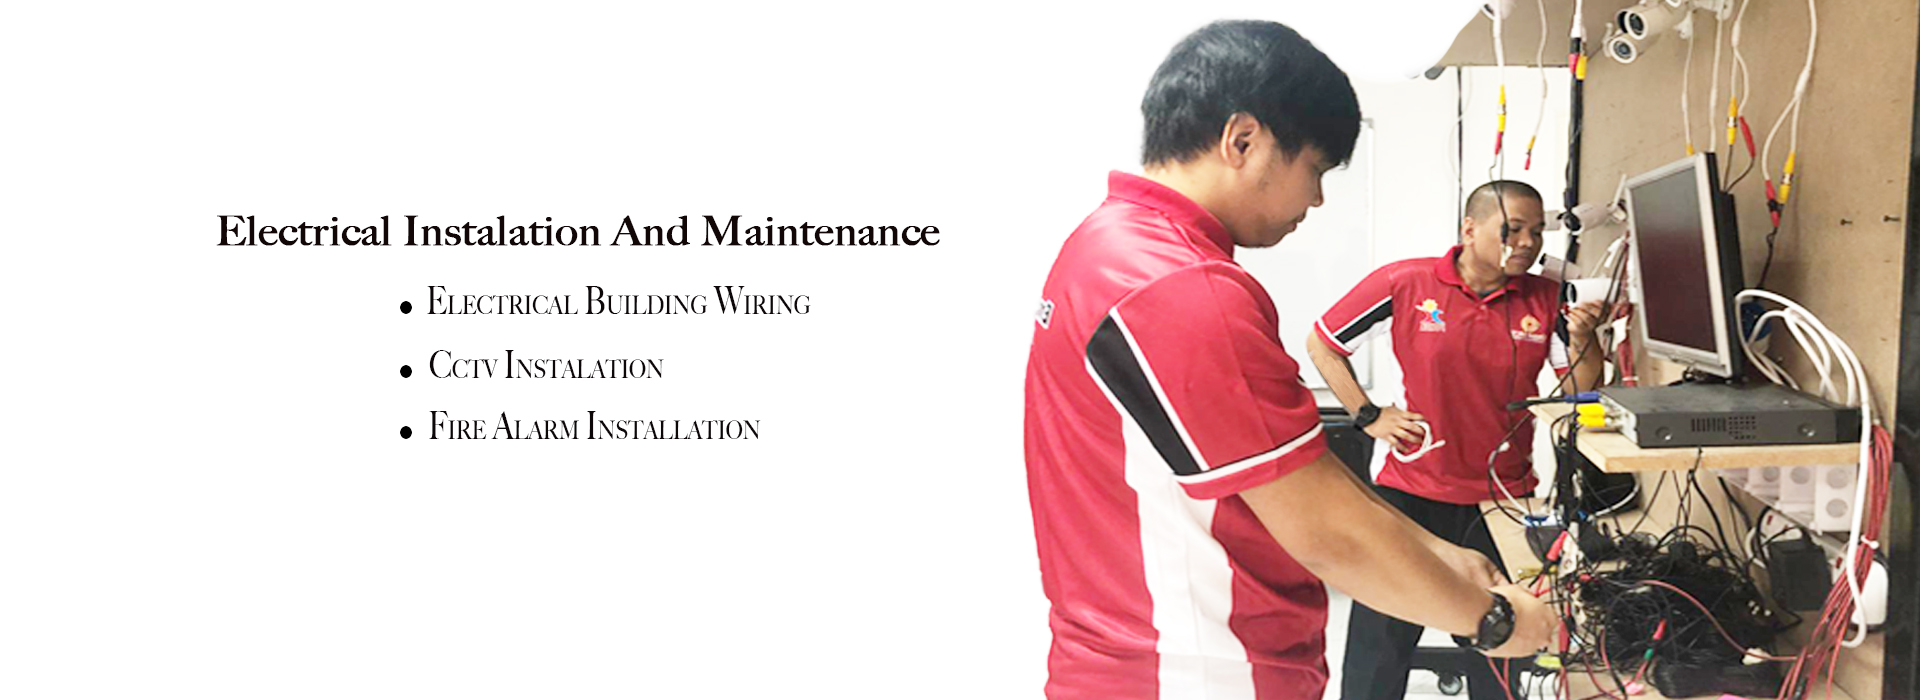 Electrical Installation Maintenance (EIM)